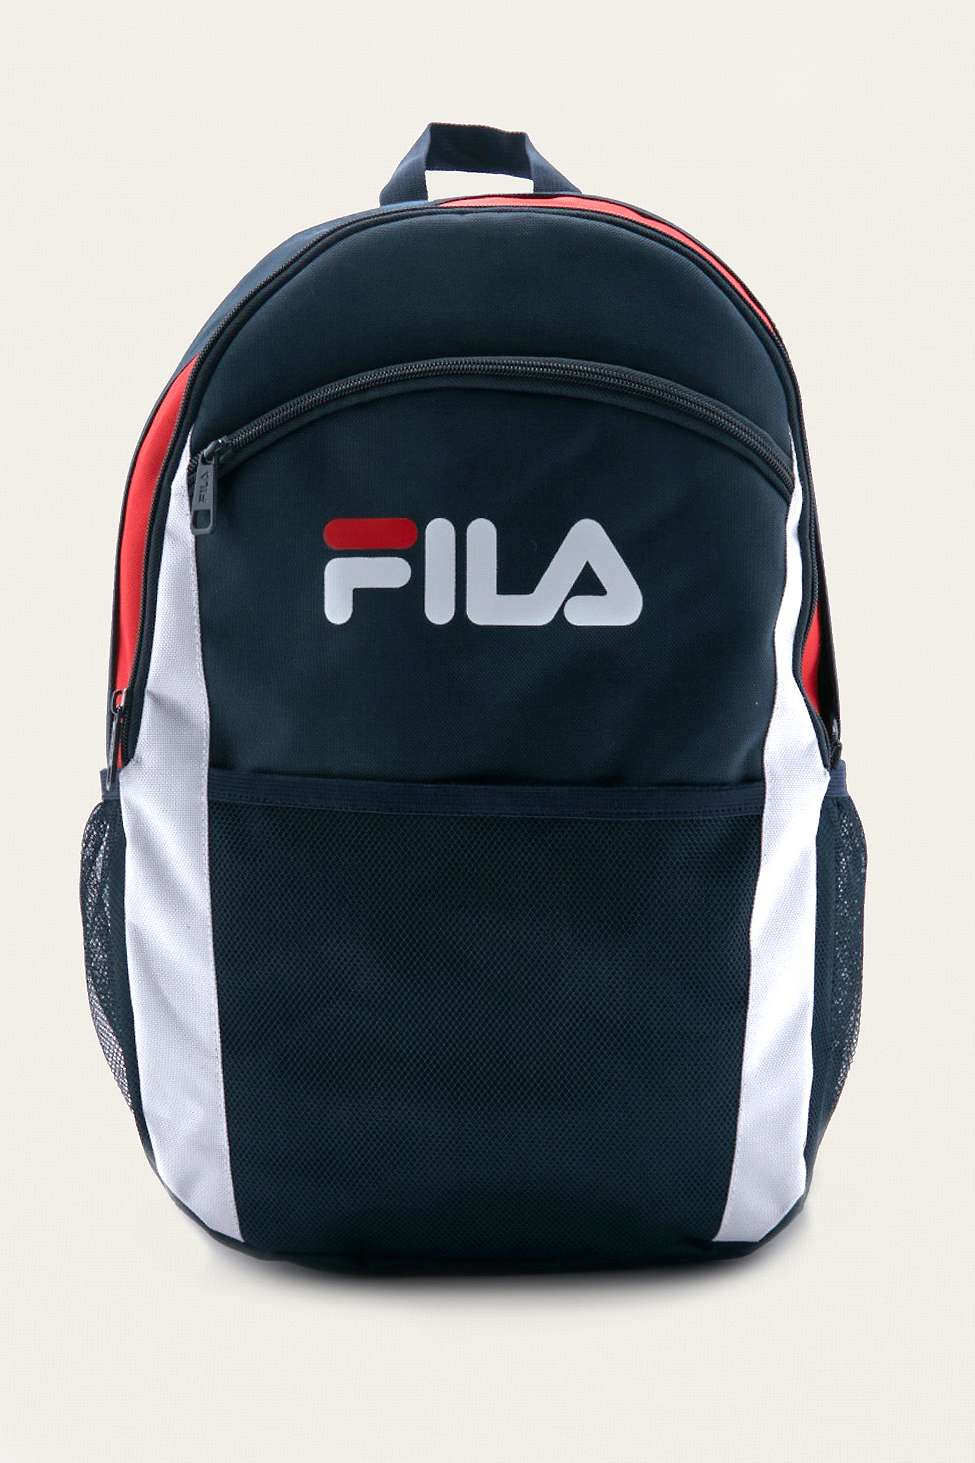 Fila Cesare Backpack Urban Outfitters